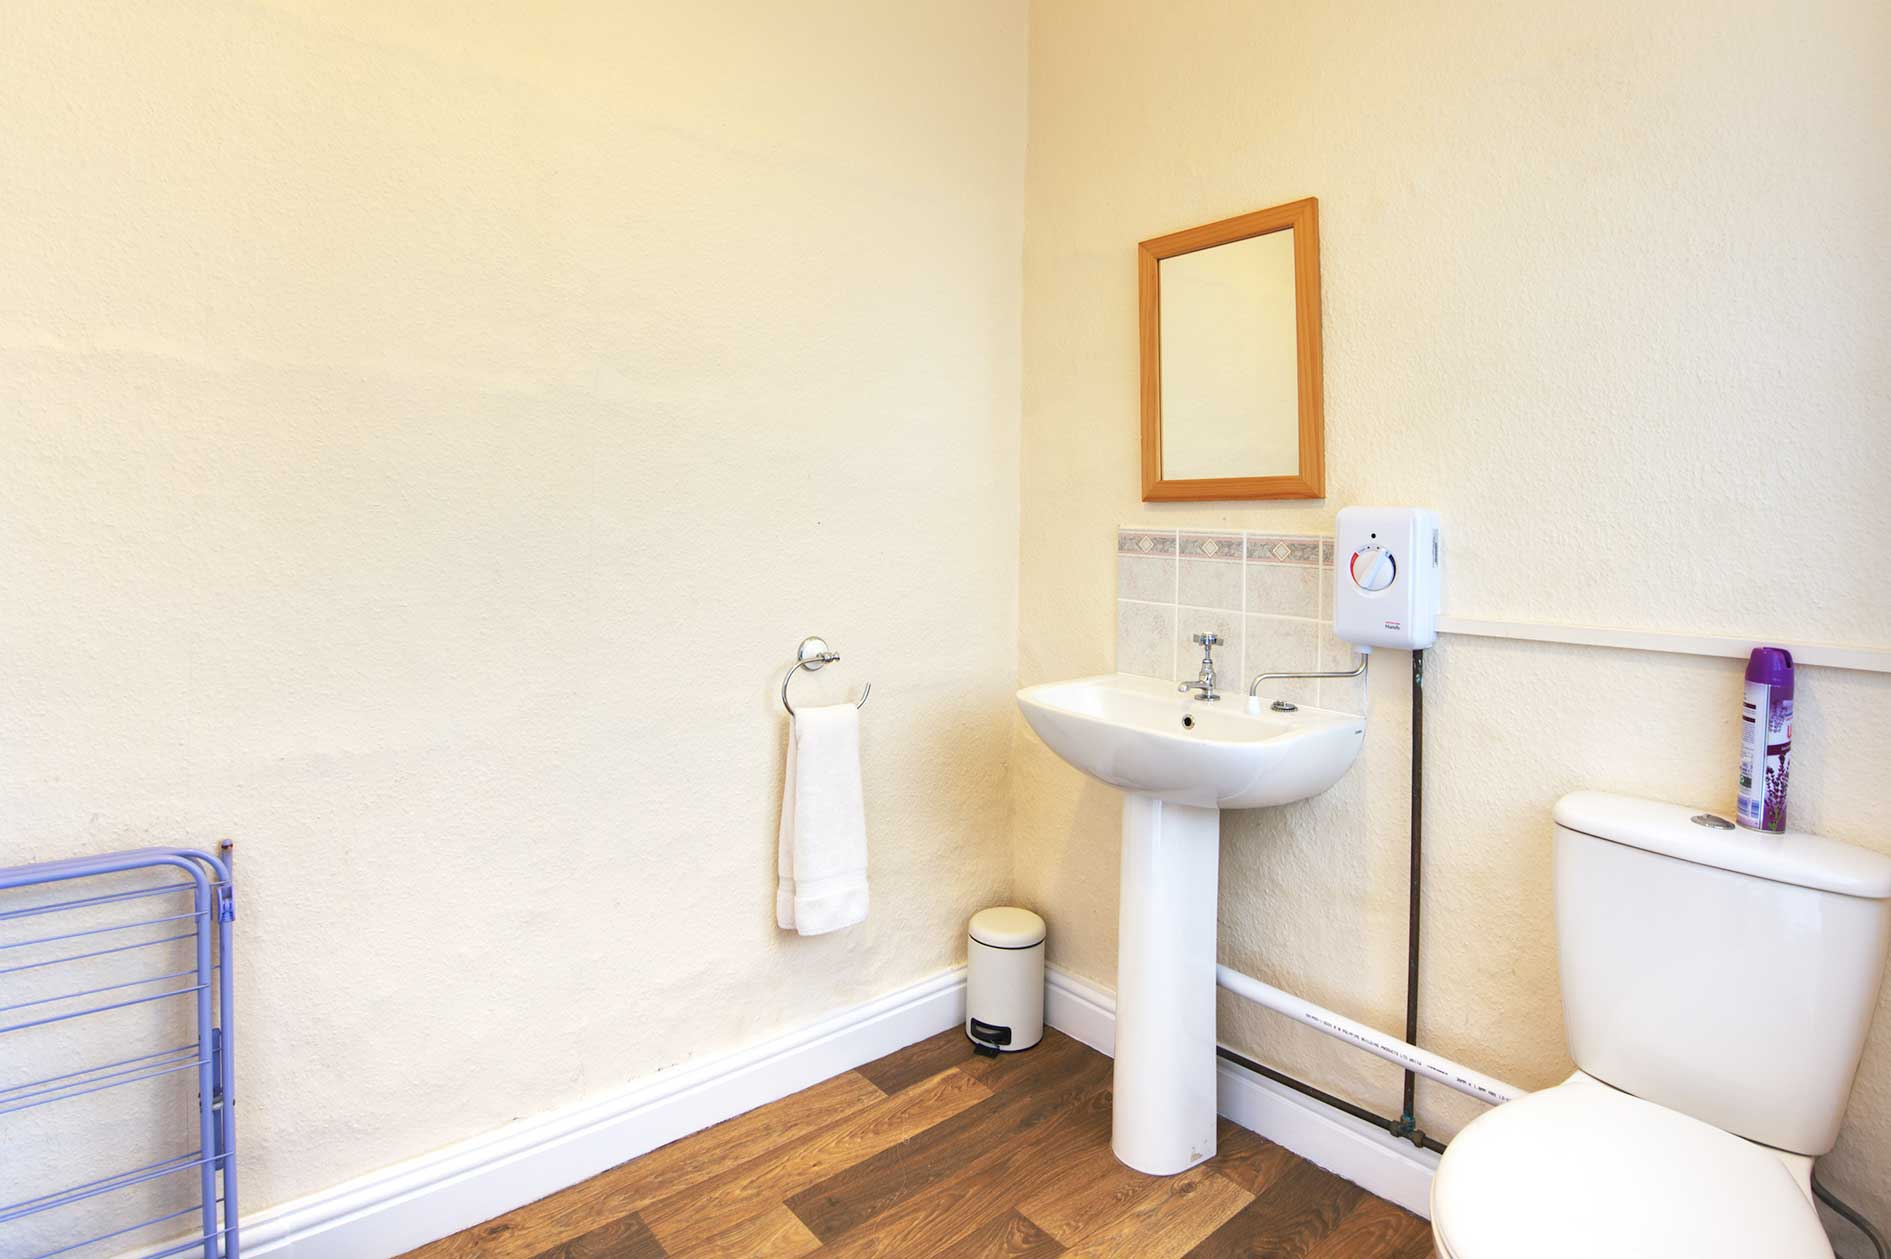 Light Bathroom With White Sink And Toilet And Wooden Floor